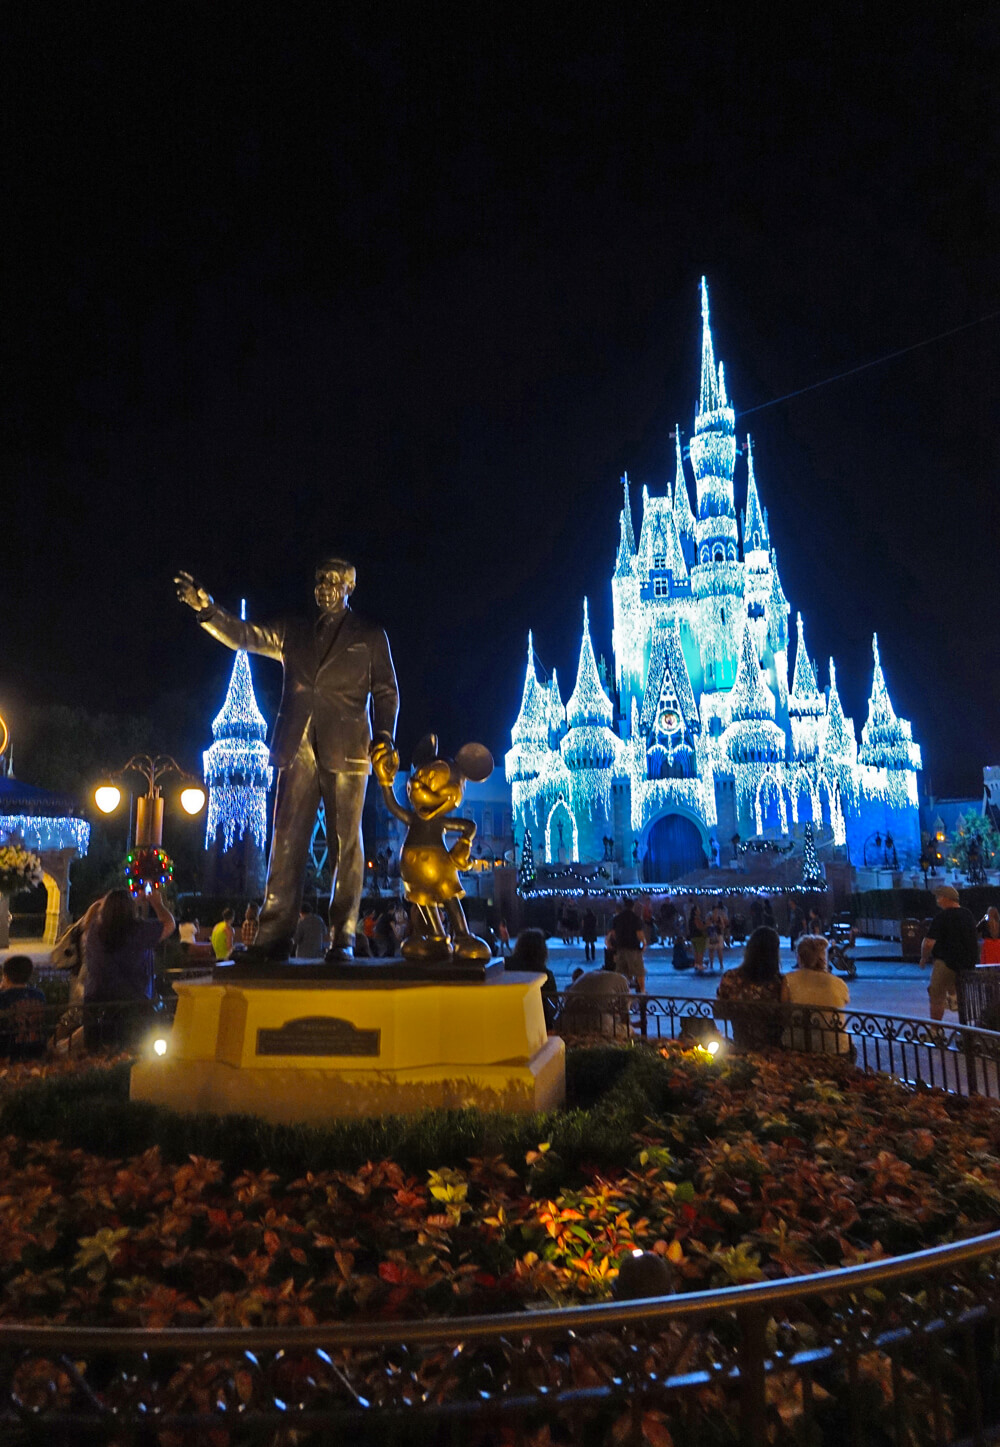 What's Happening at Disney World This Winter